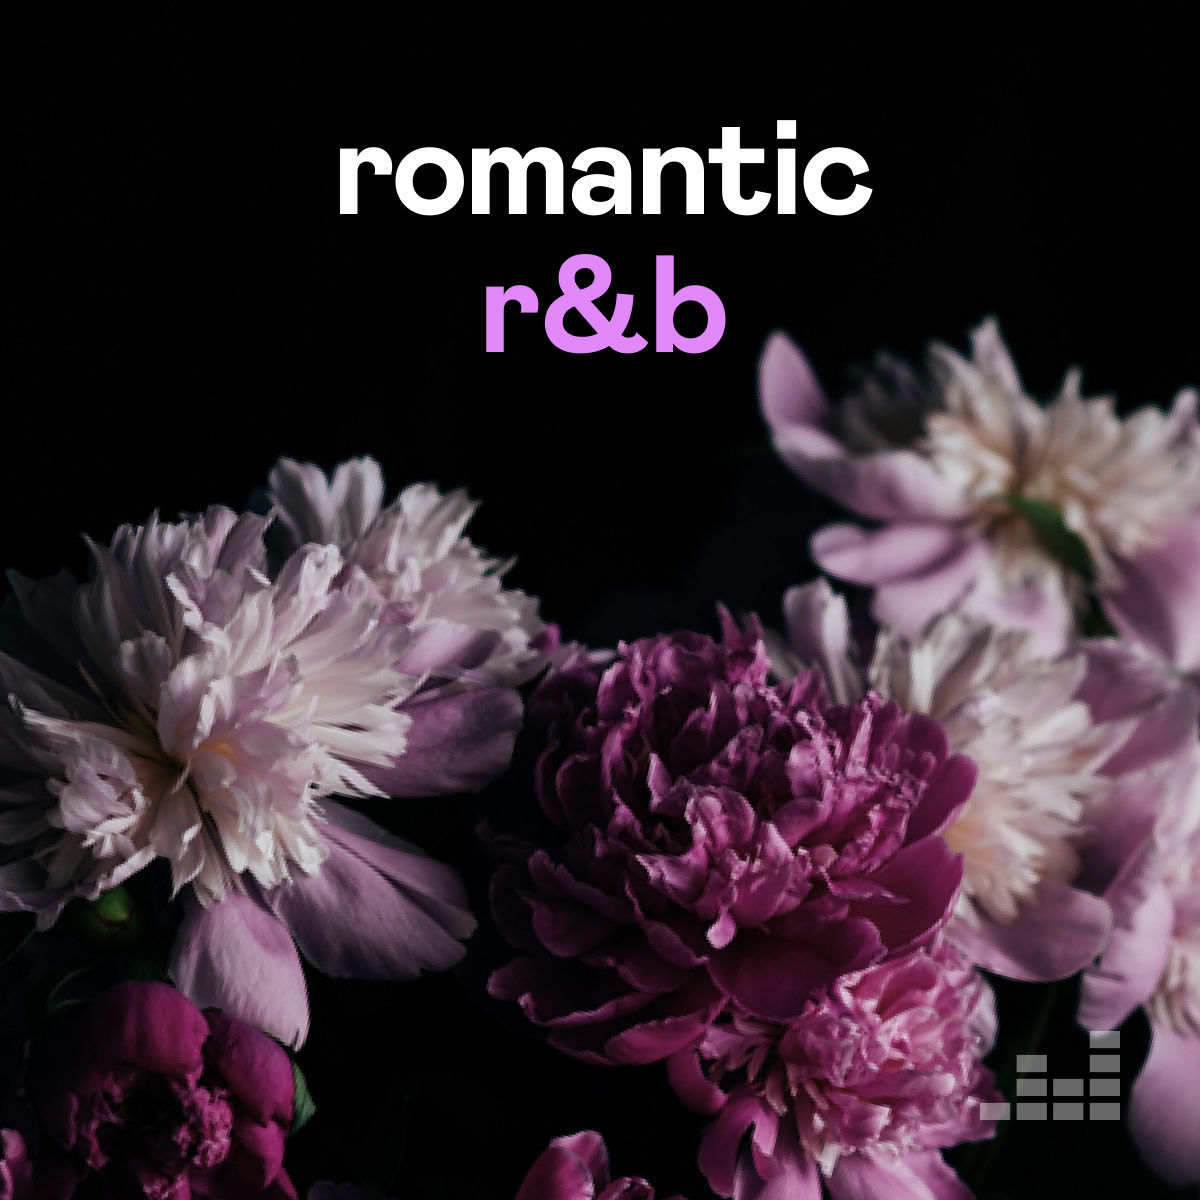 Cover Playlist RnB - Romantic RnB album gratuitement